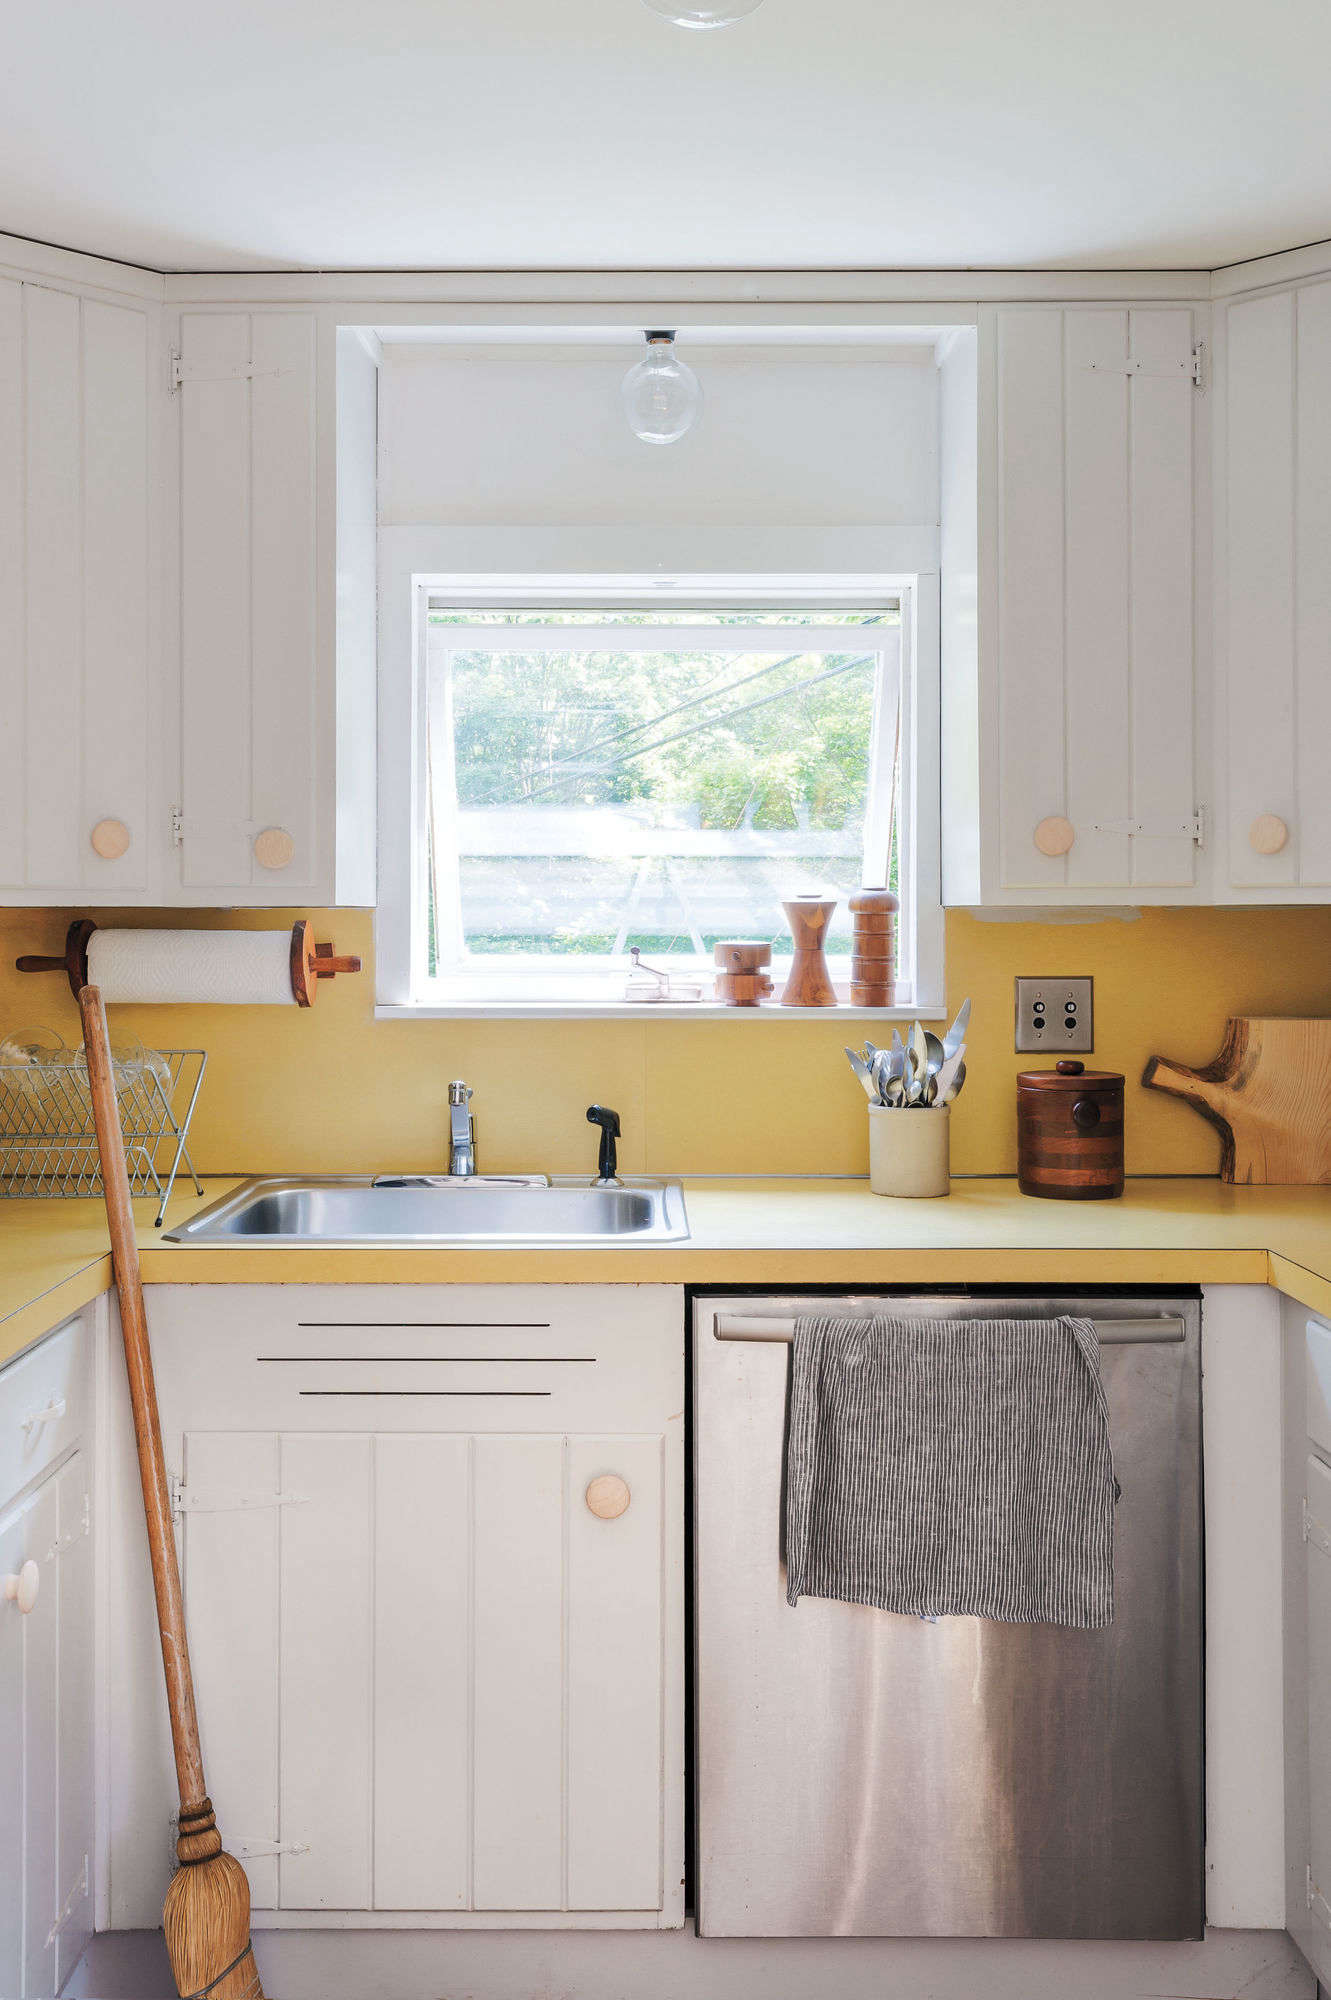 Expert Tips on Painting Your Kitchen Cabinets on